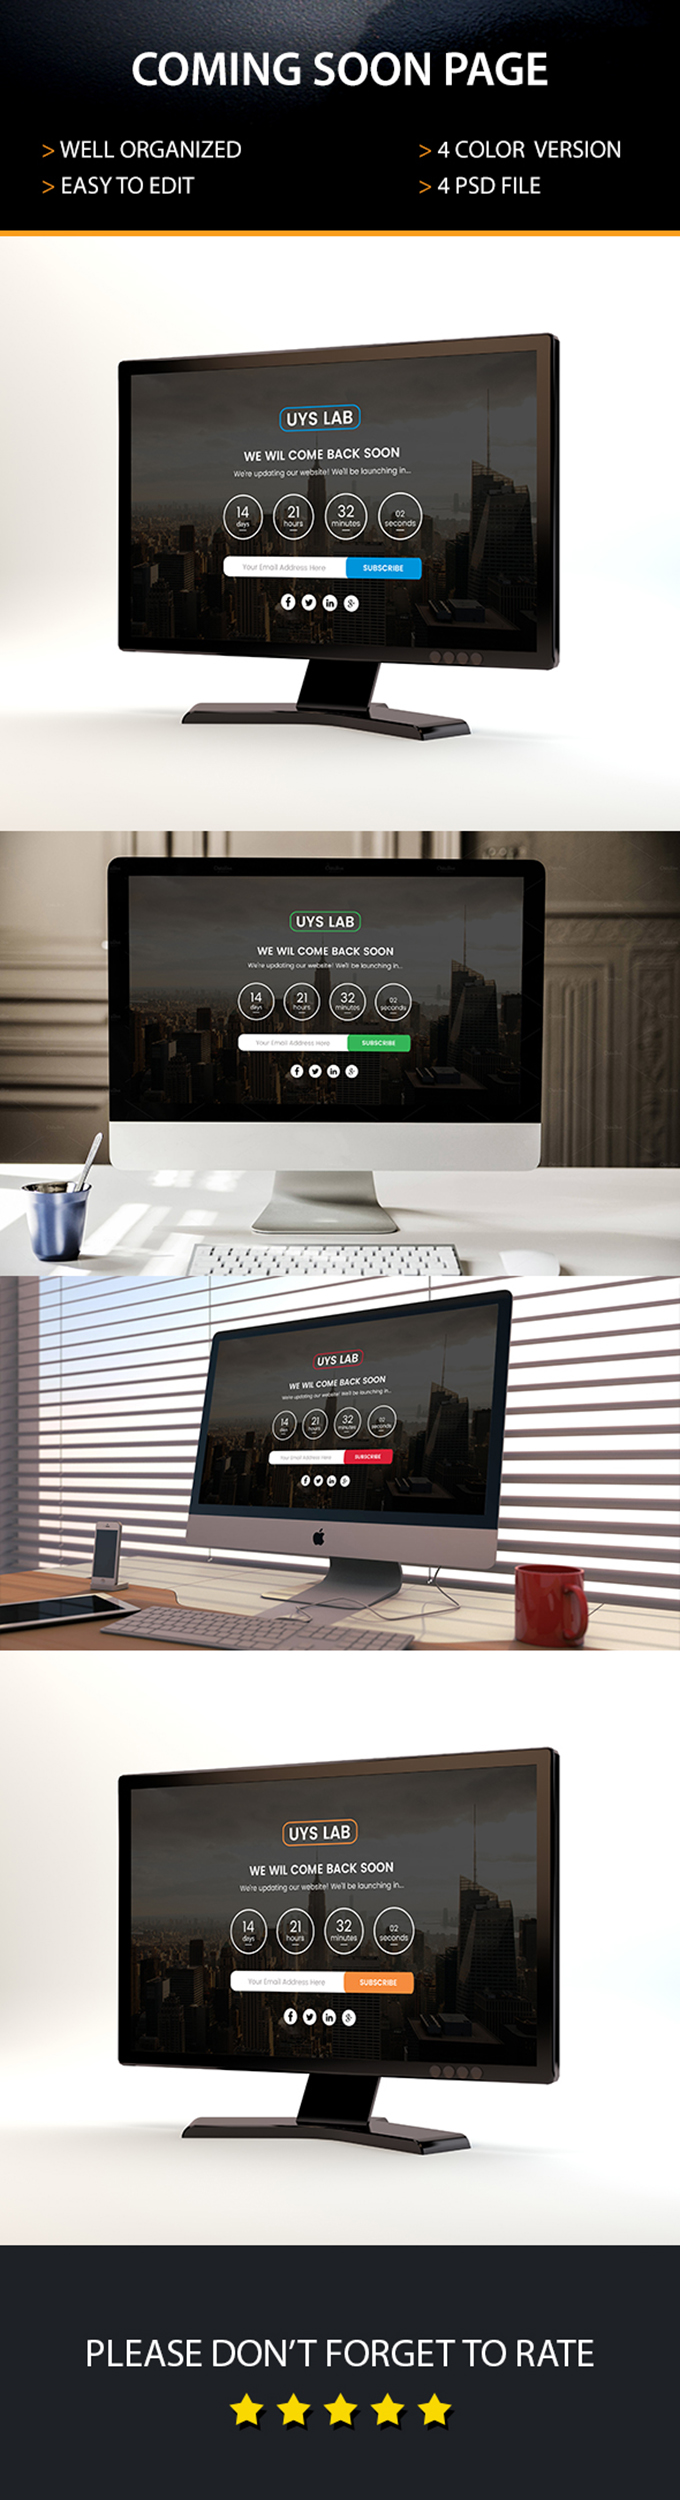 Coming Soon Page PSD Template